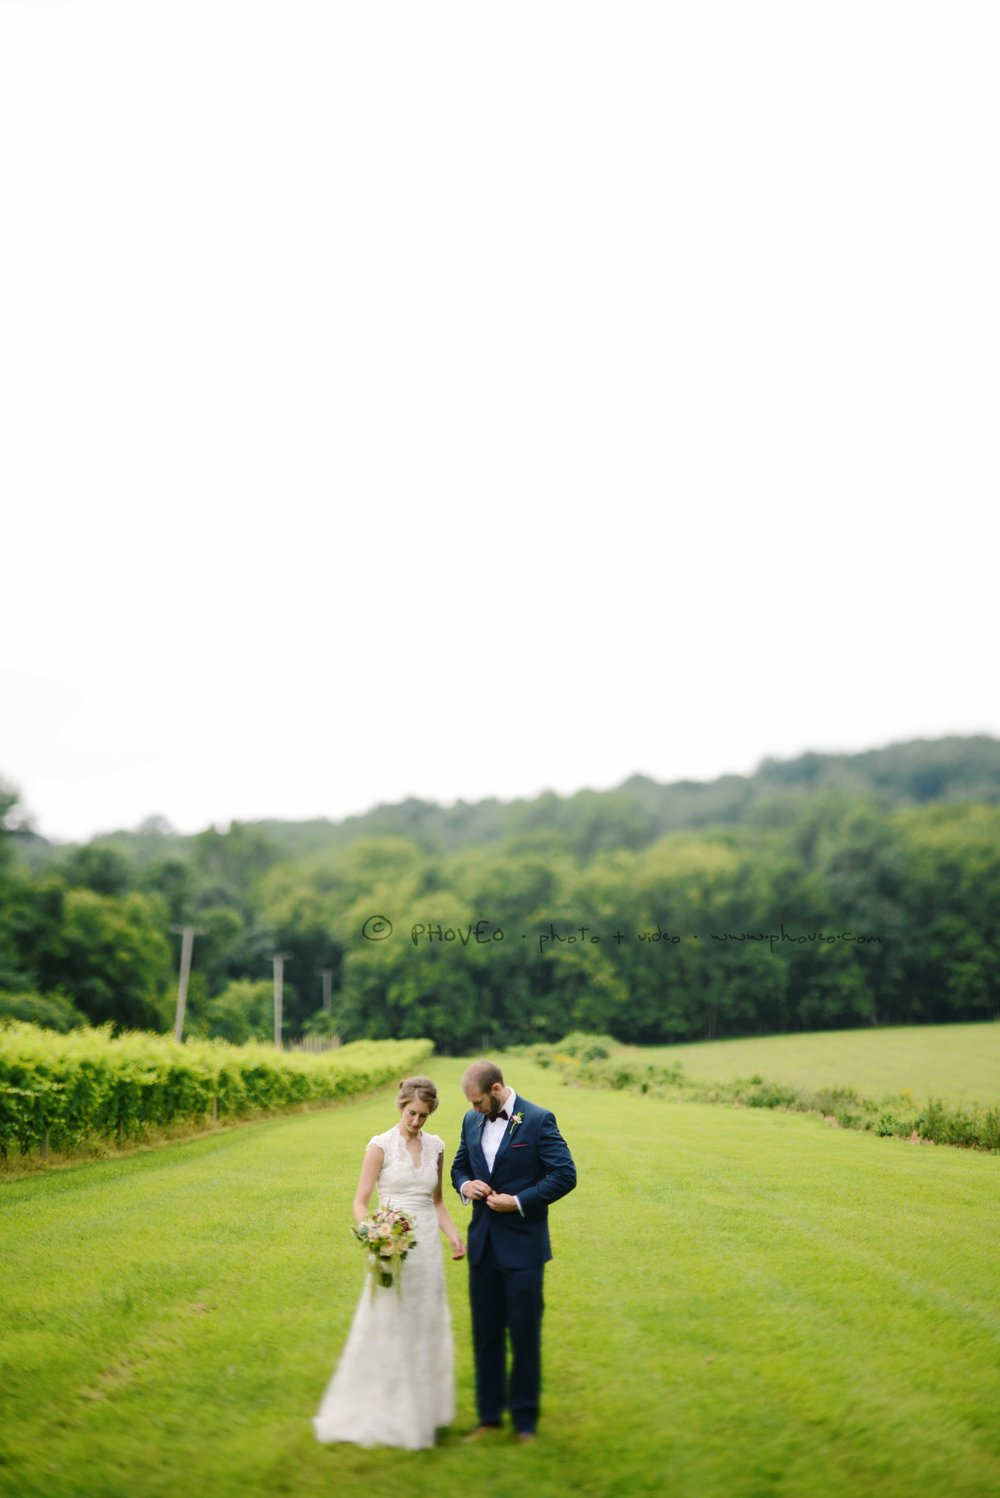 WM_20170812_Lauren+Sean_207.jpg